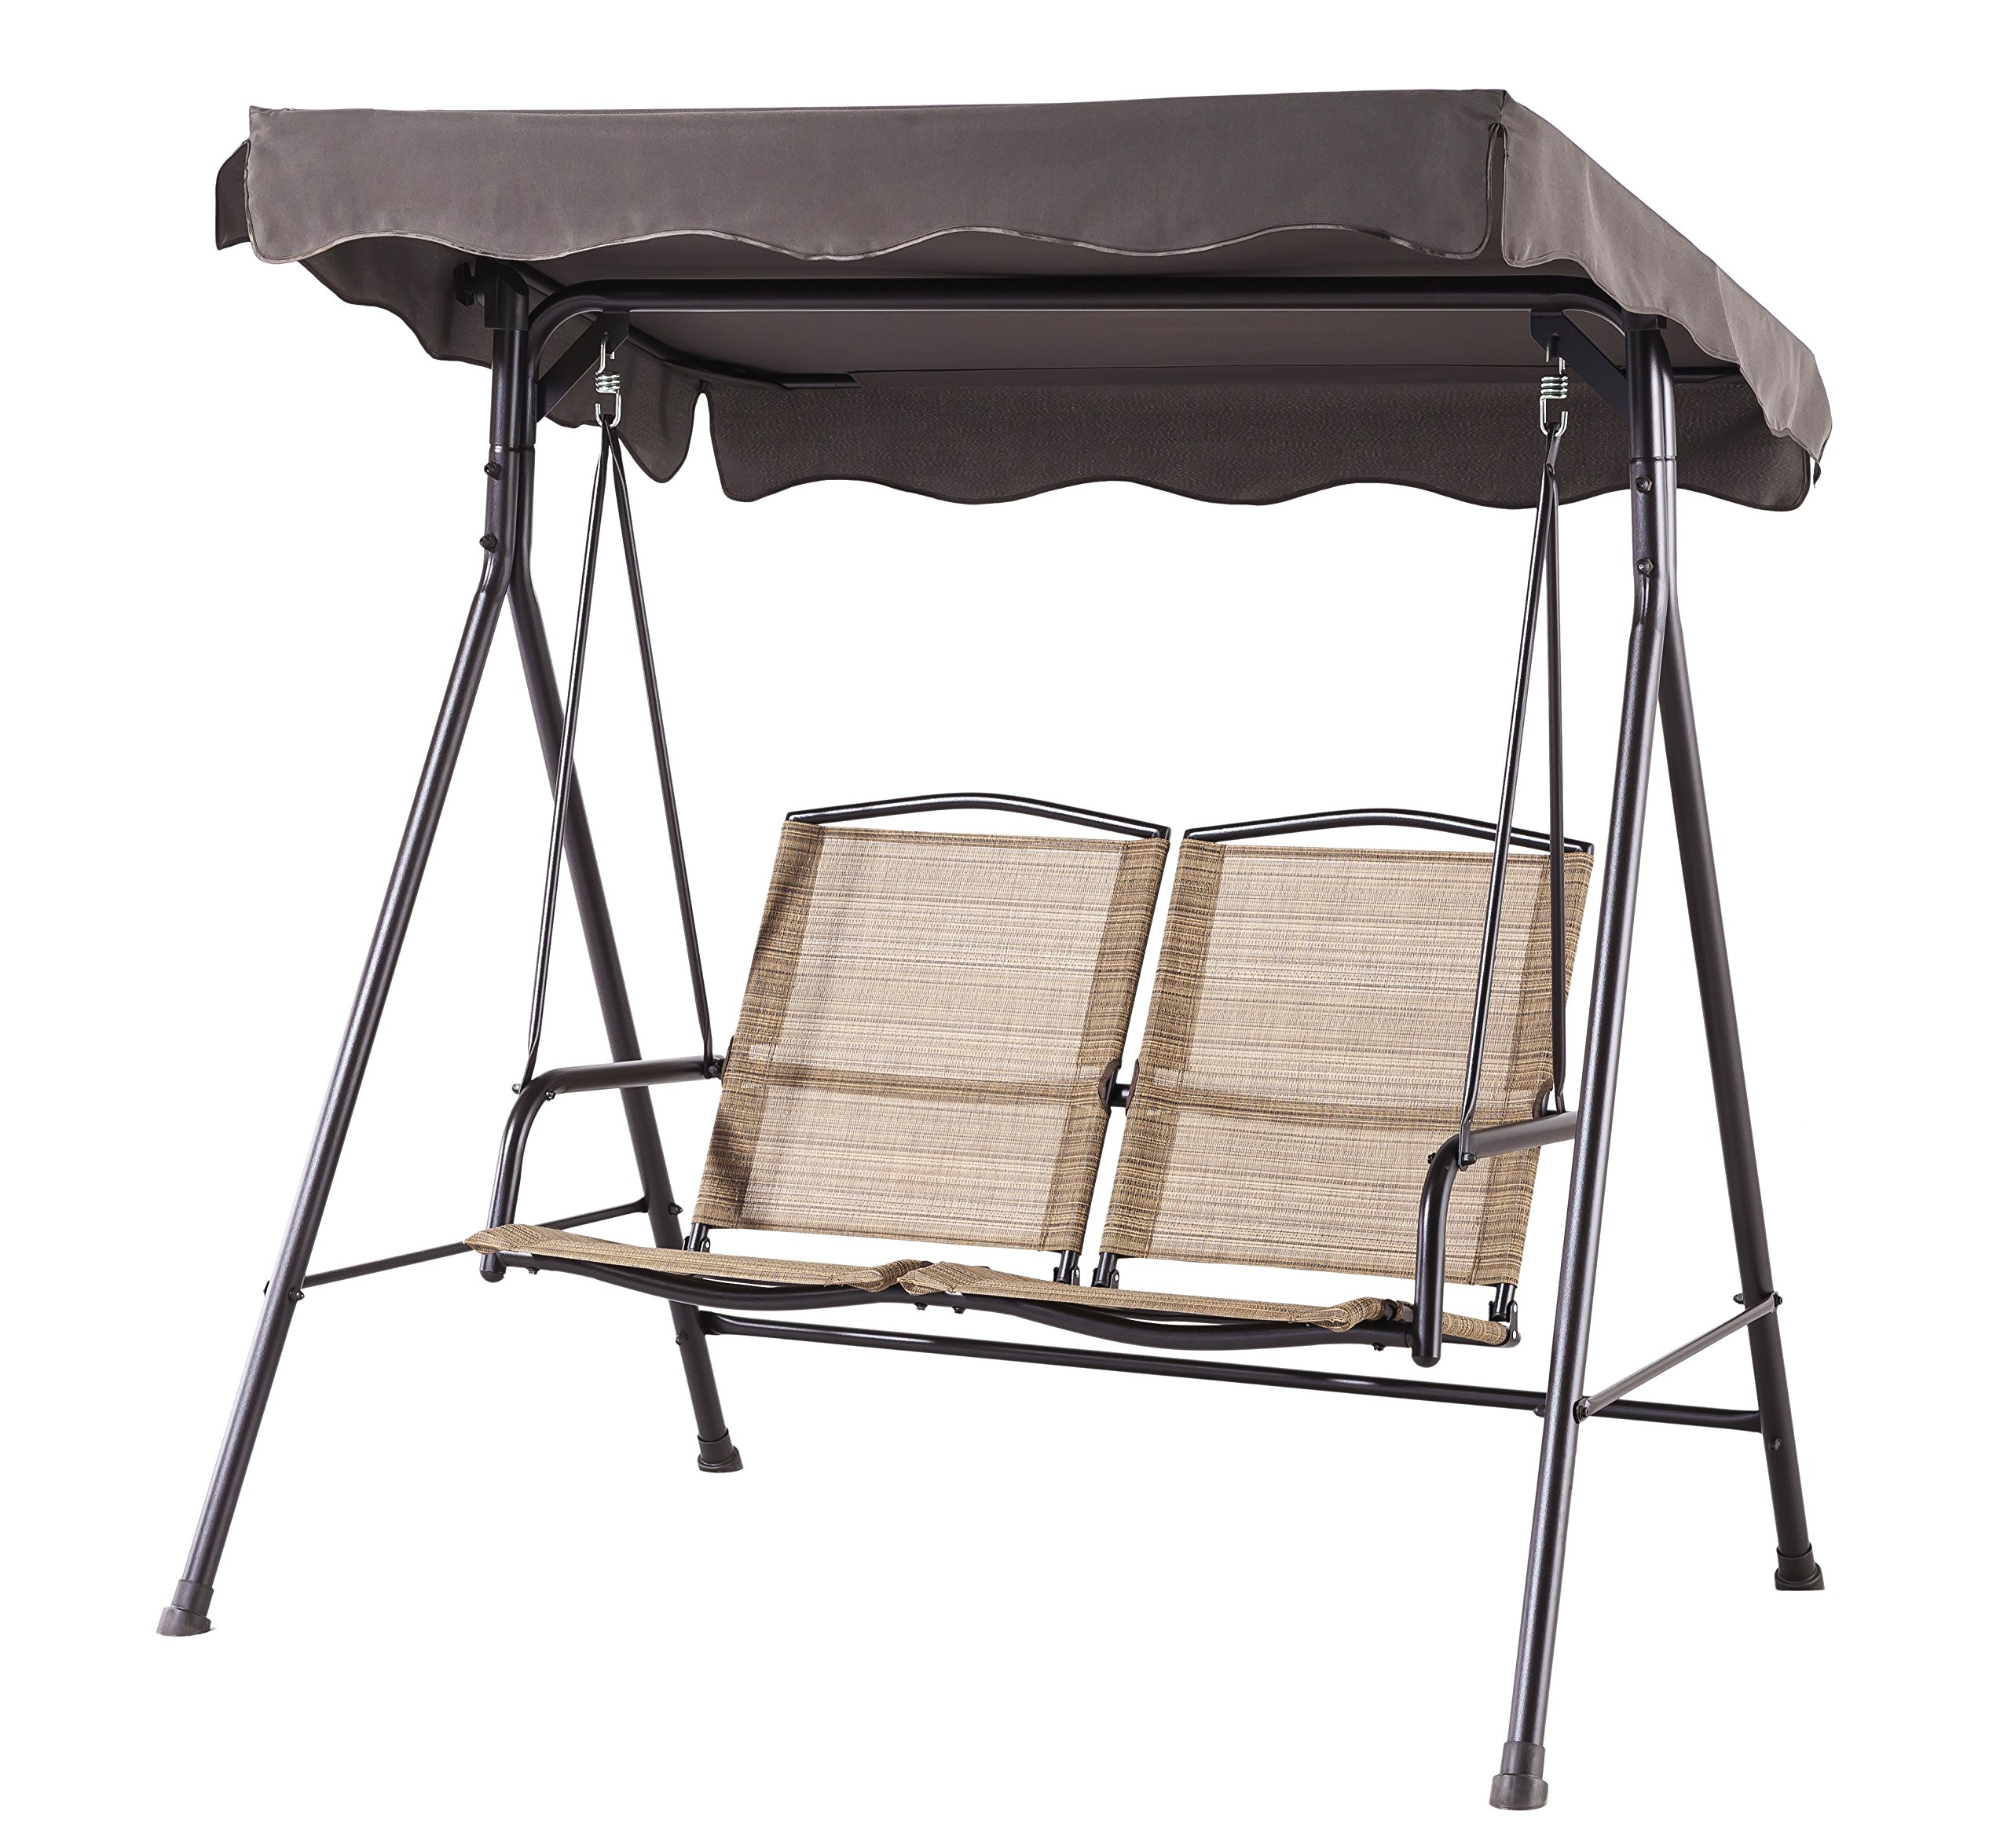 Backyard Classics Porch Swing with Stand and Awning by Backyard Classics